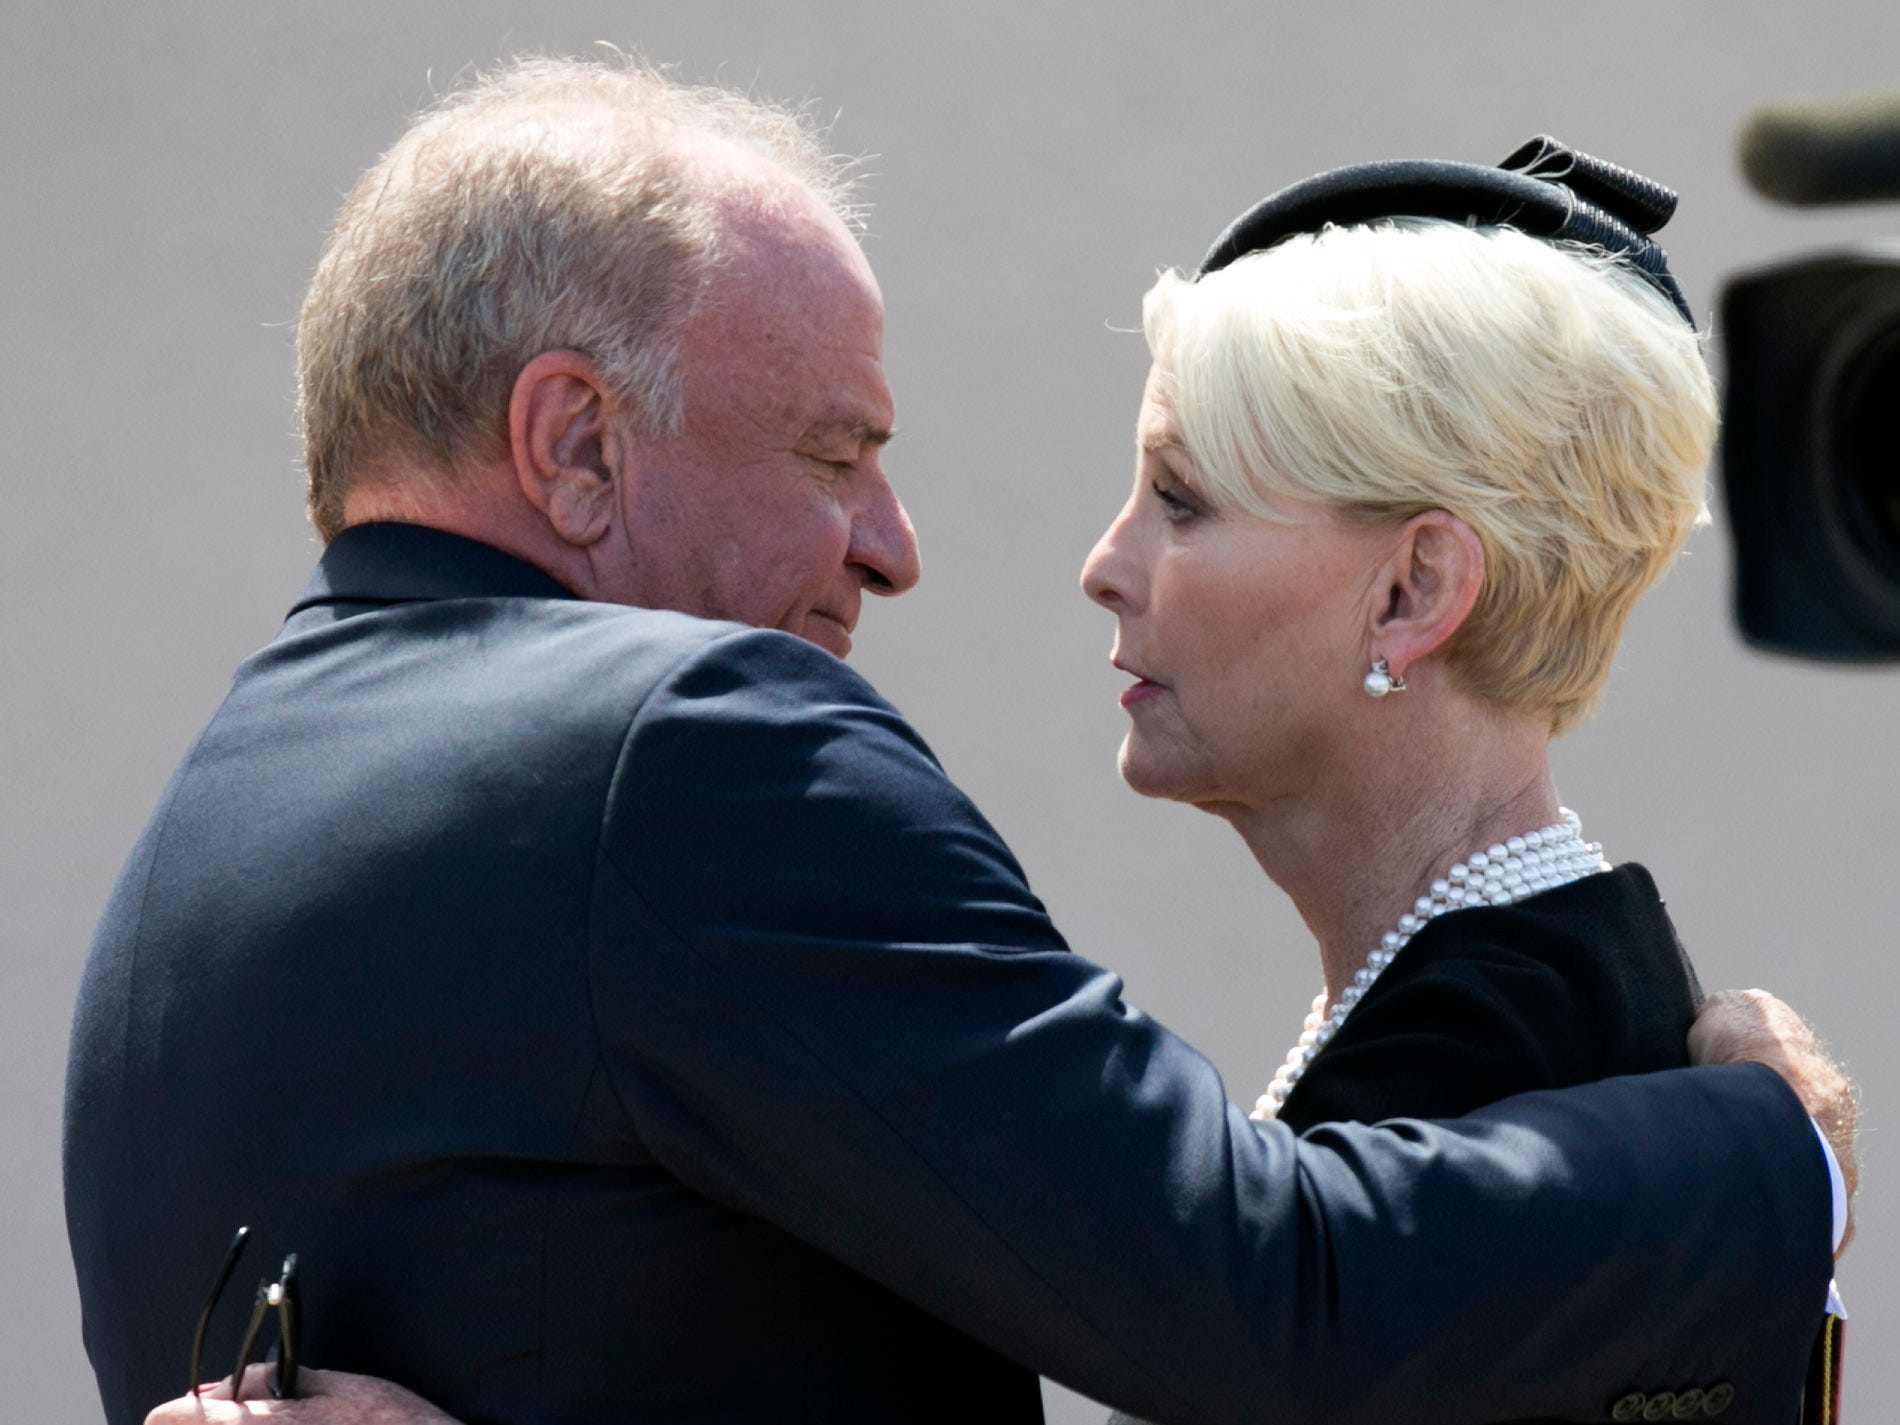 Grant Woods hugs Cindy McCain, wife of Sen. John McCain, following a memorial service for at North Phoenix Baptist Church in Phoenix, Aug. 30, 2018.